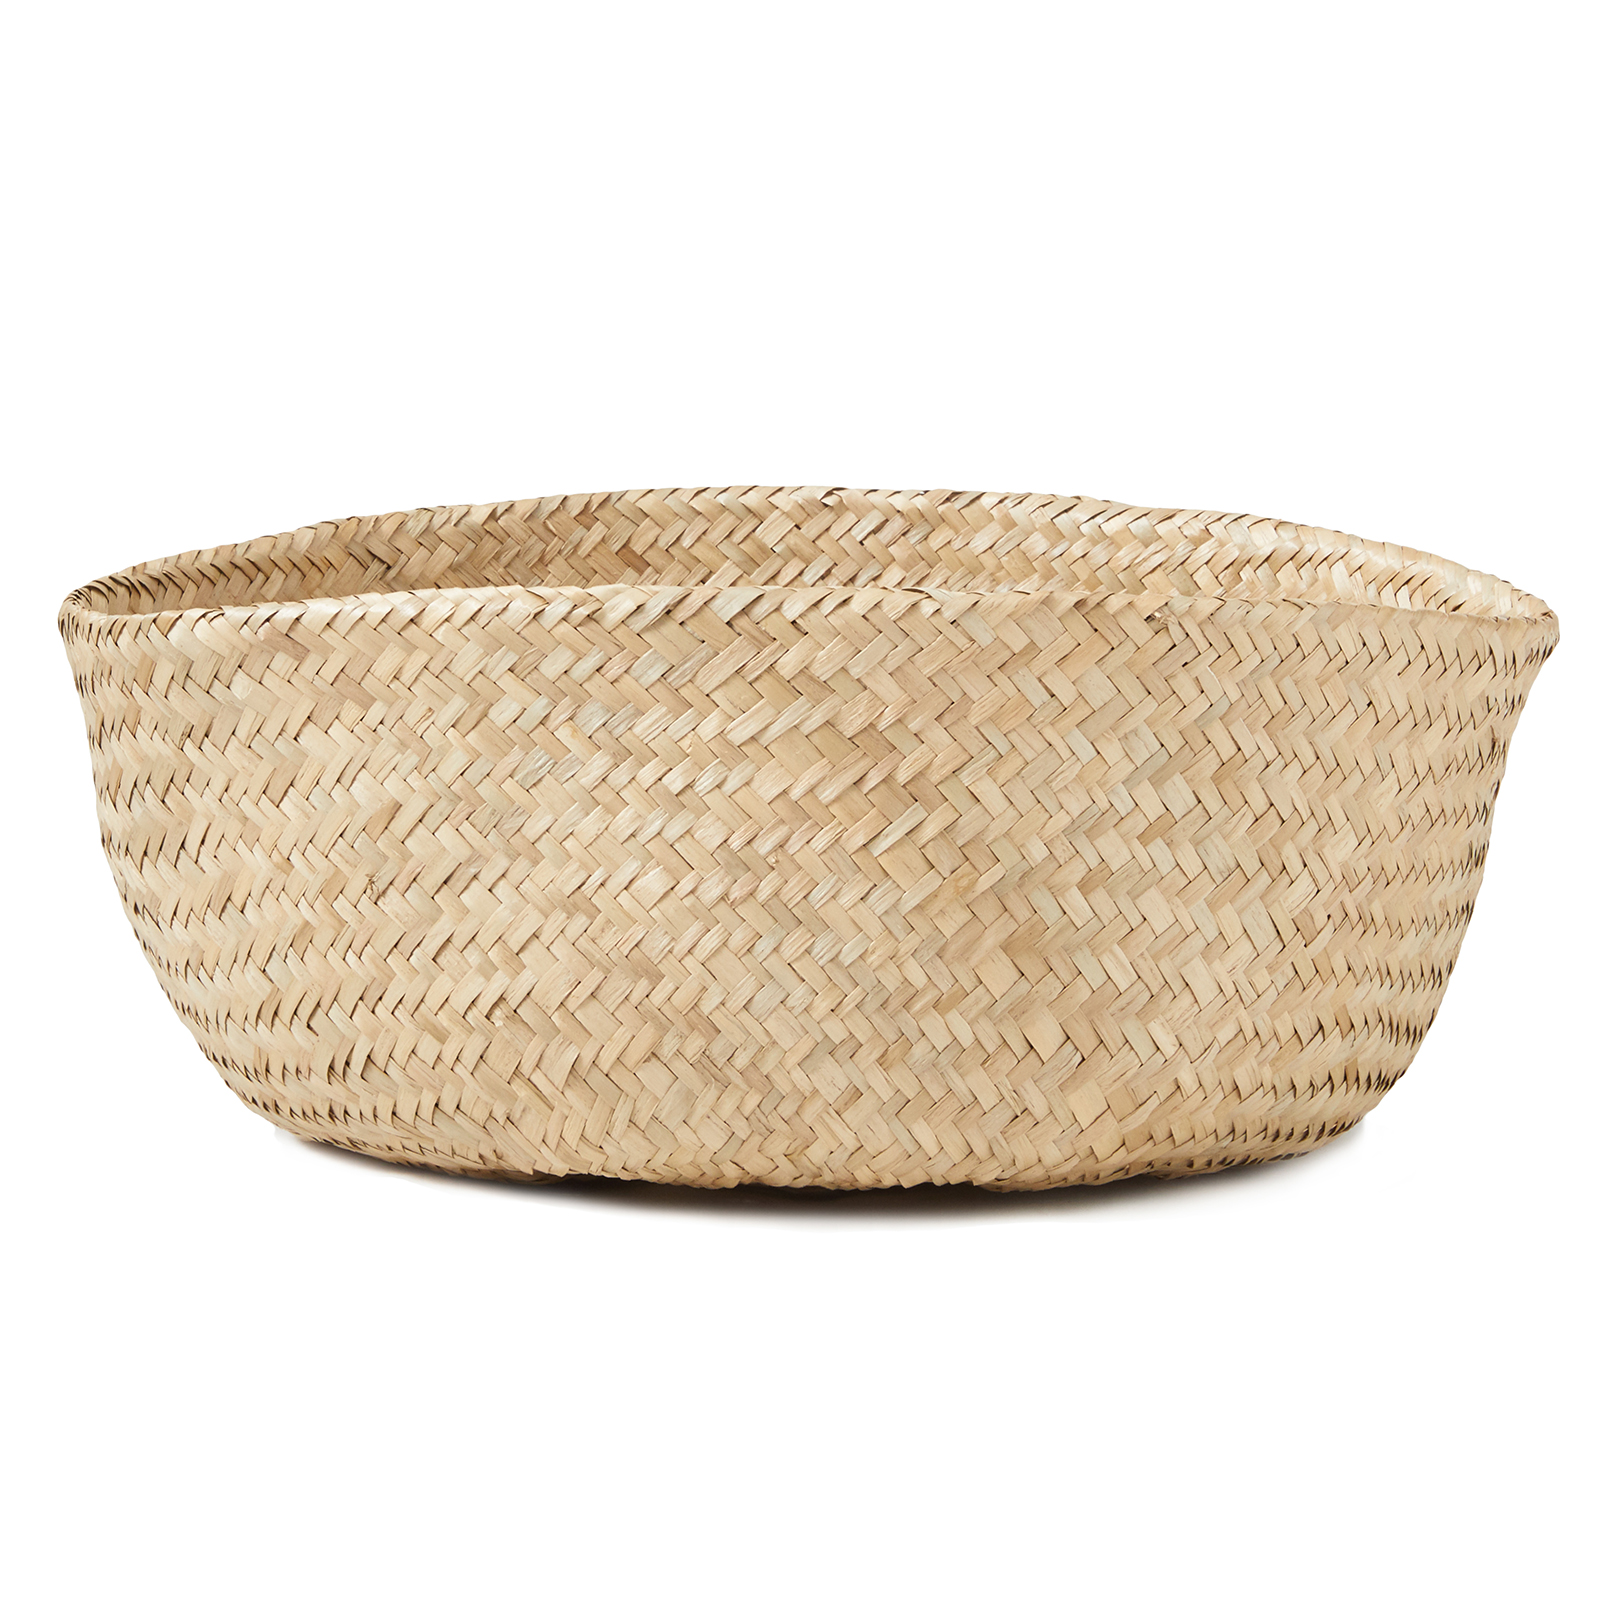 miniature 3 - Hand-Woven Palm and Seagrass Belly Baskets for Storage and Organization